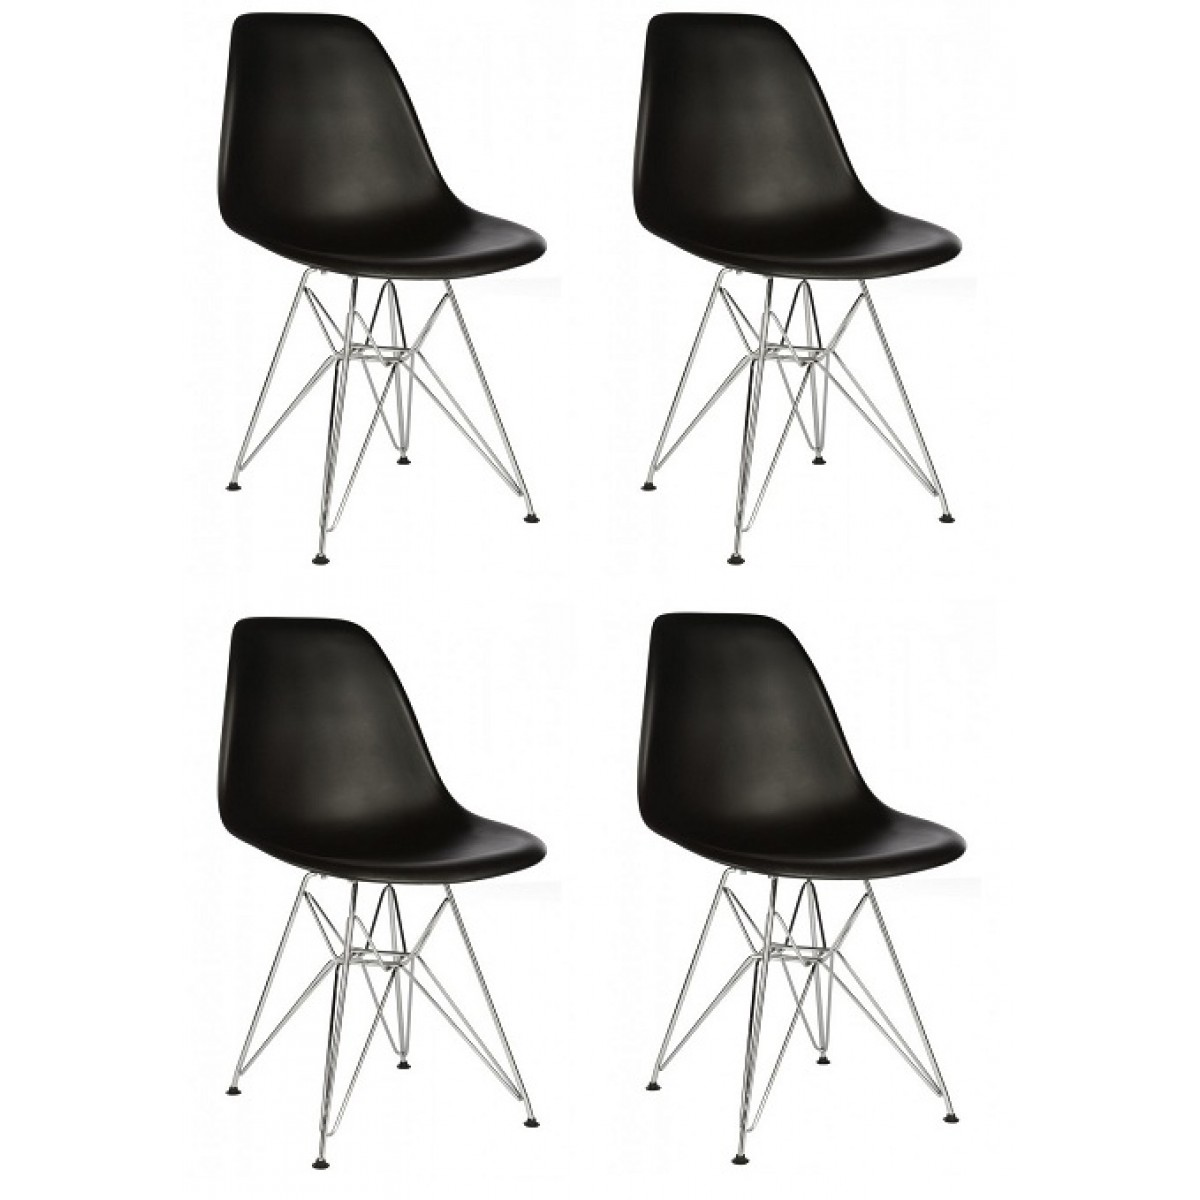 plastic chairs with steel legs comfy reading chair set of 4 eames style dsr molded black dining shell